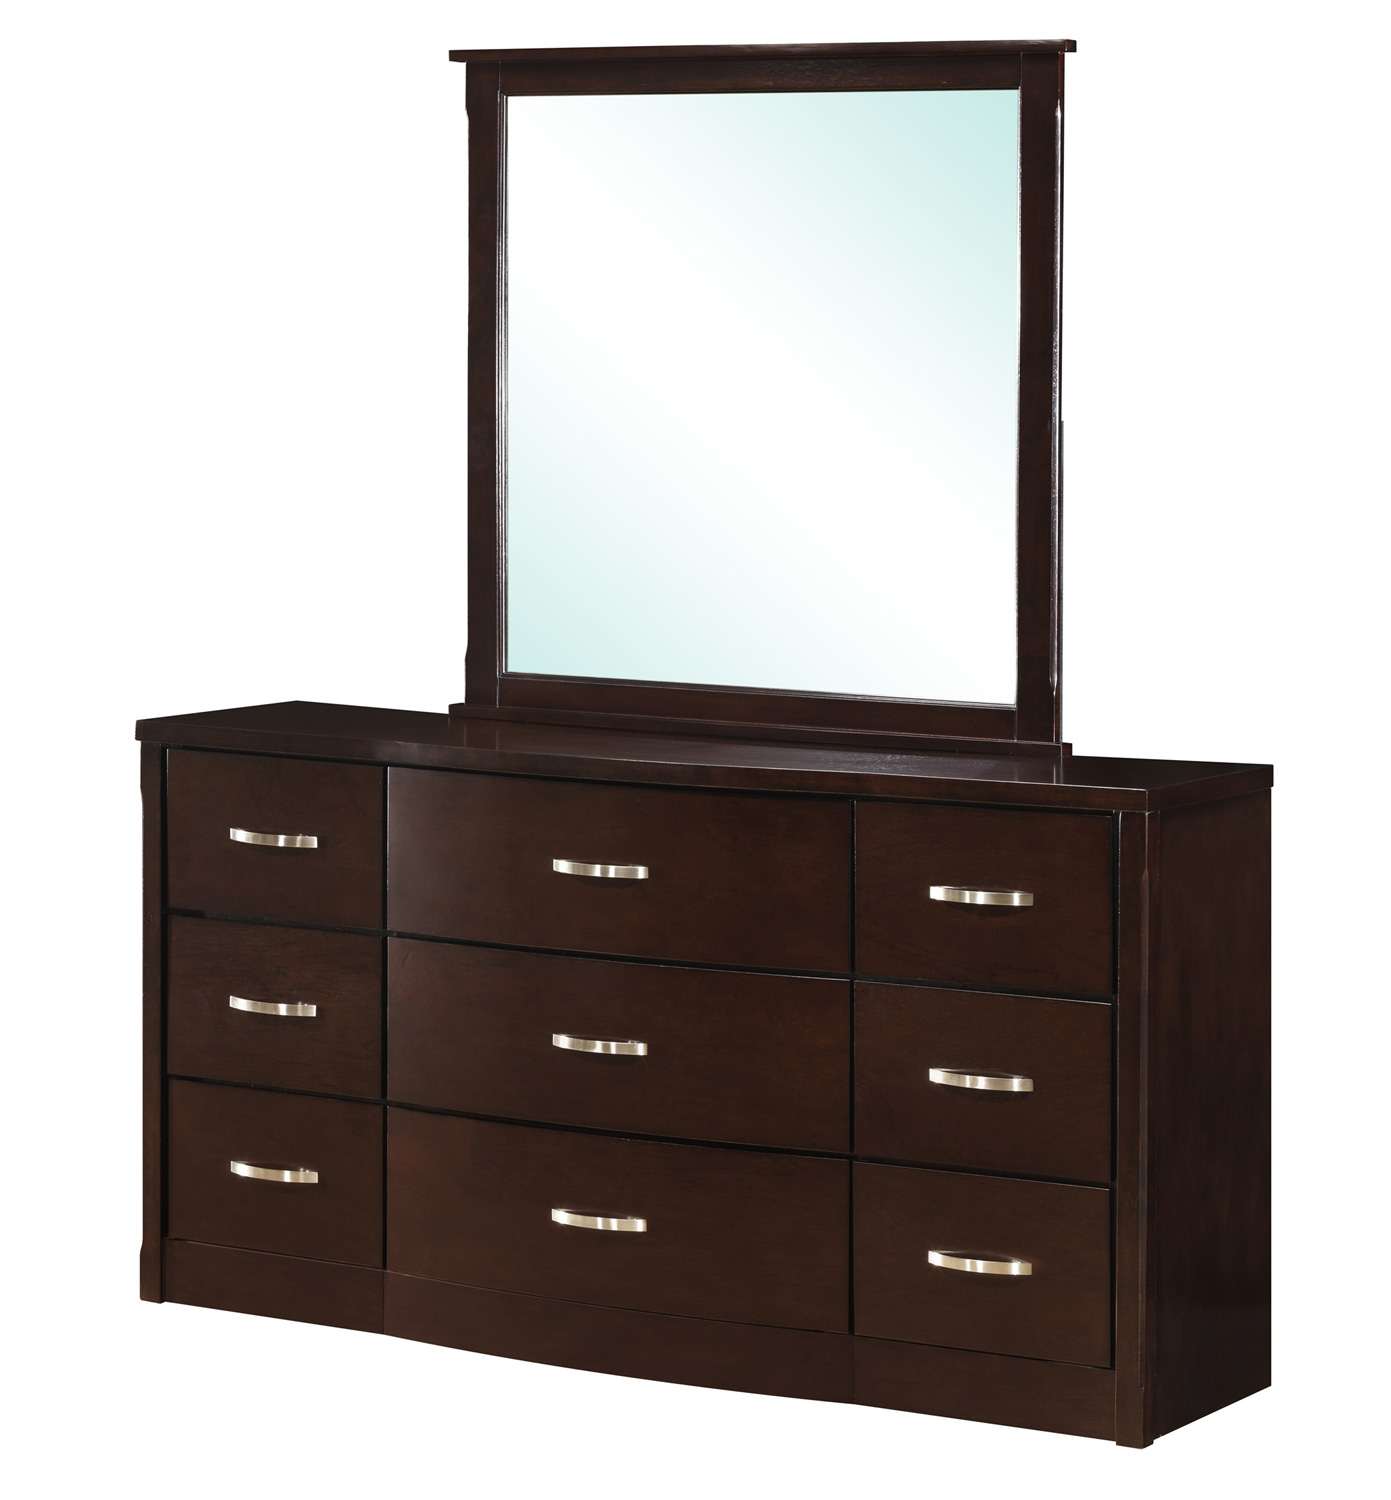 Global Furniture USA Hannah Dresser - Dark Espresso